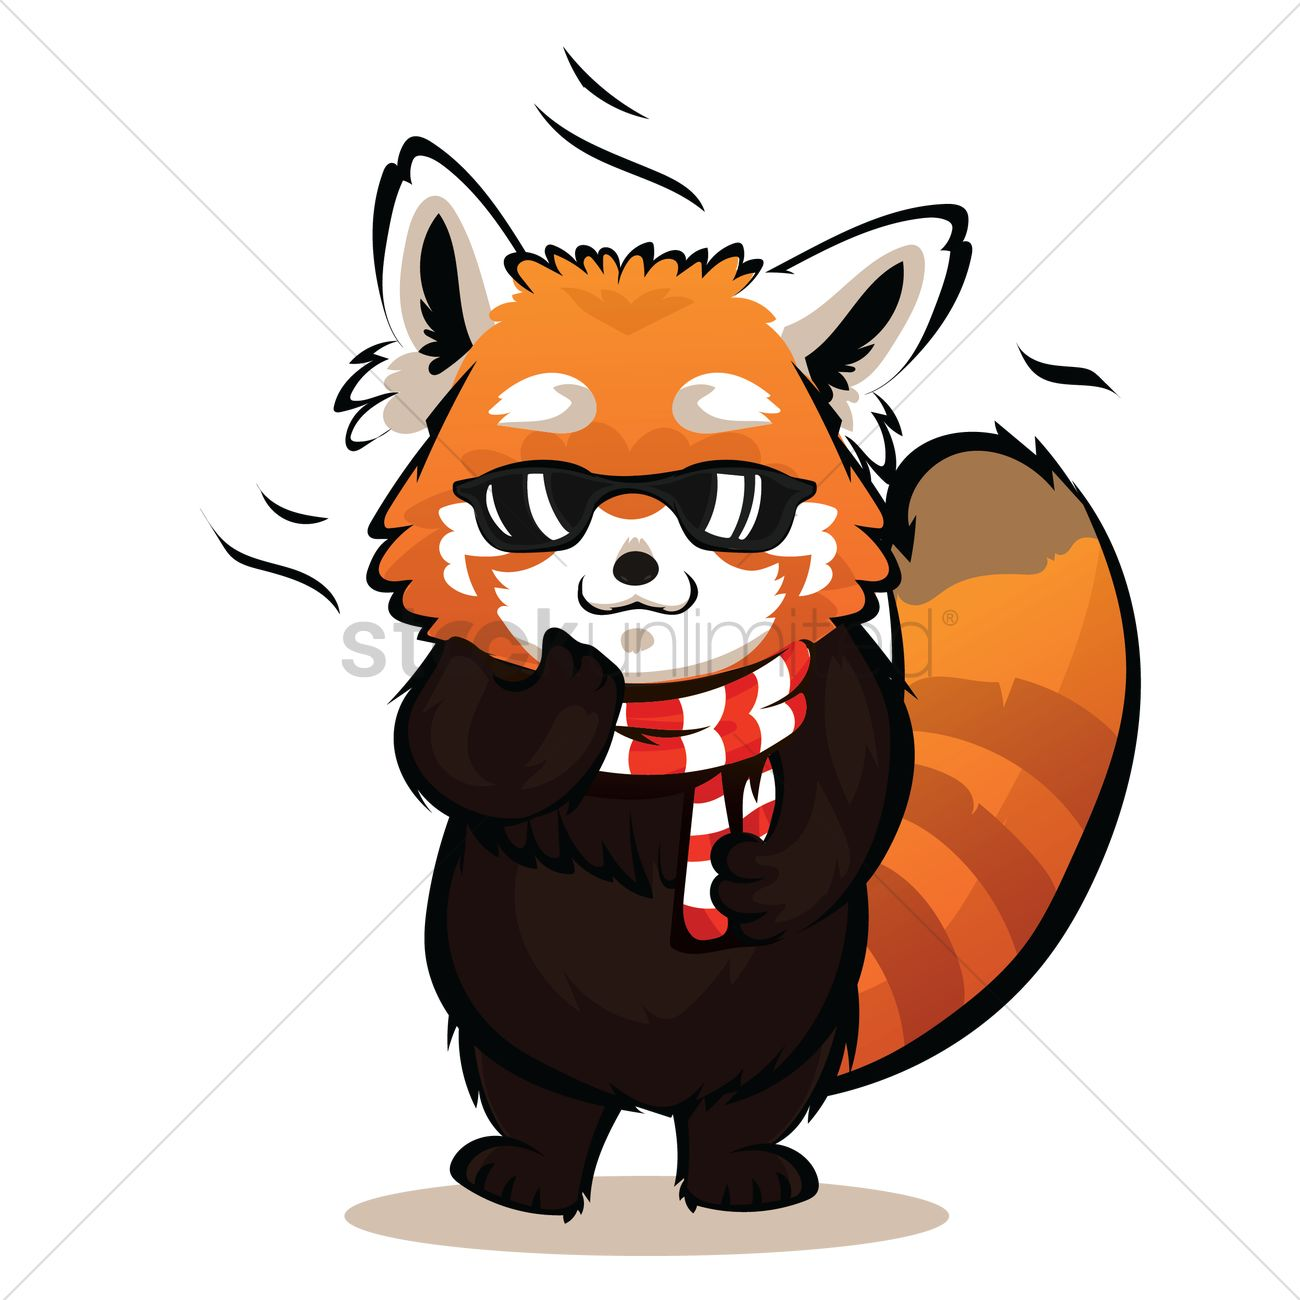 Cartoon red panda being cool vector image 3 stockunlimited clip art